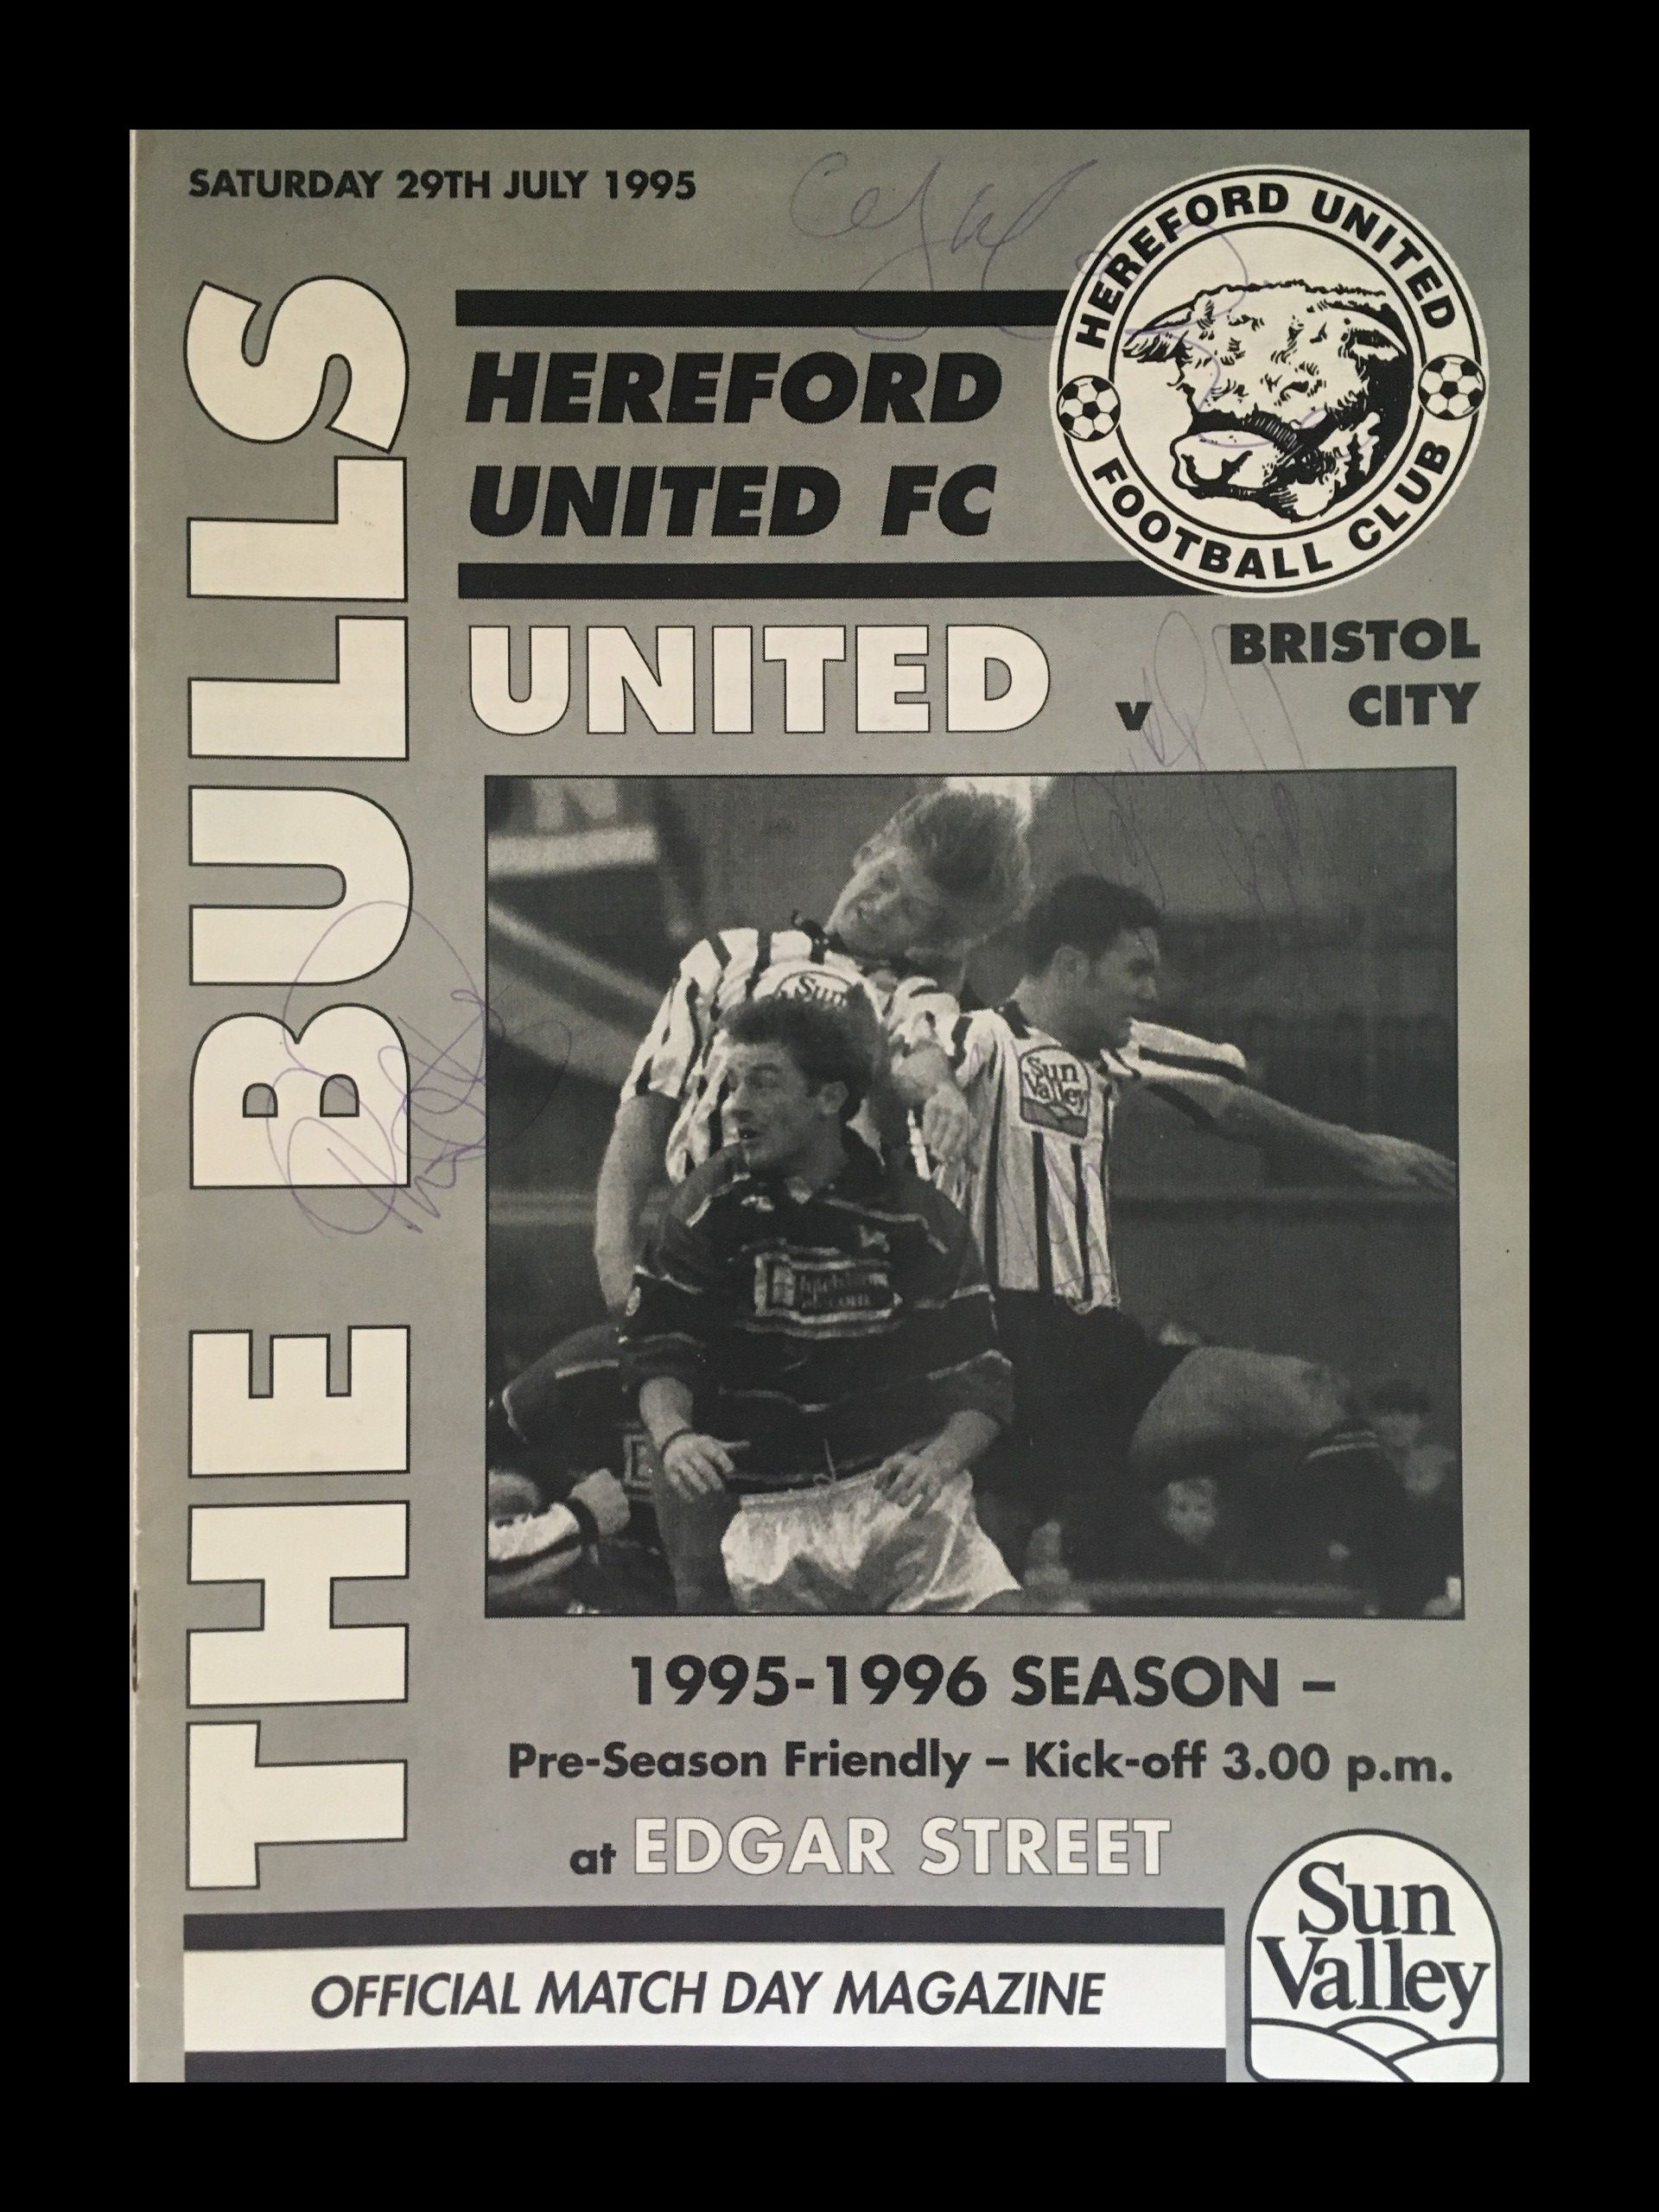 Hereford United v Bristol City 29-07-1995 Programme